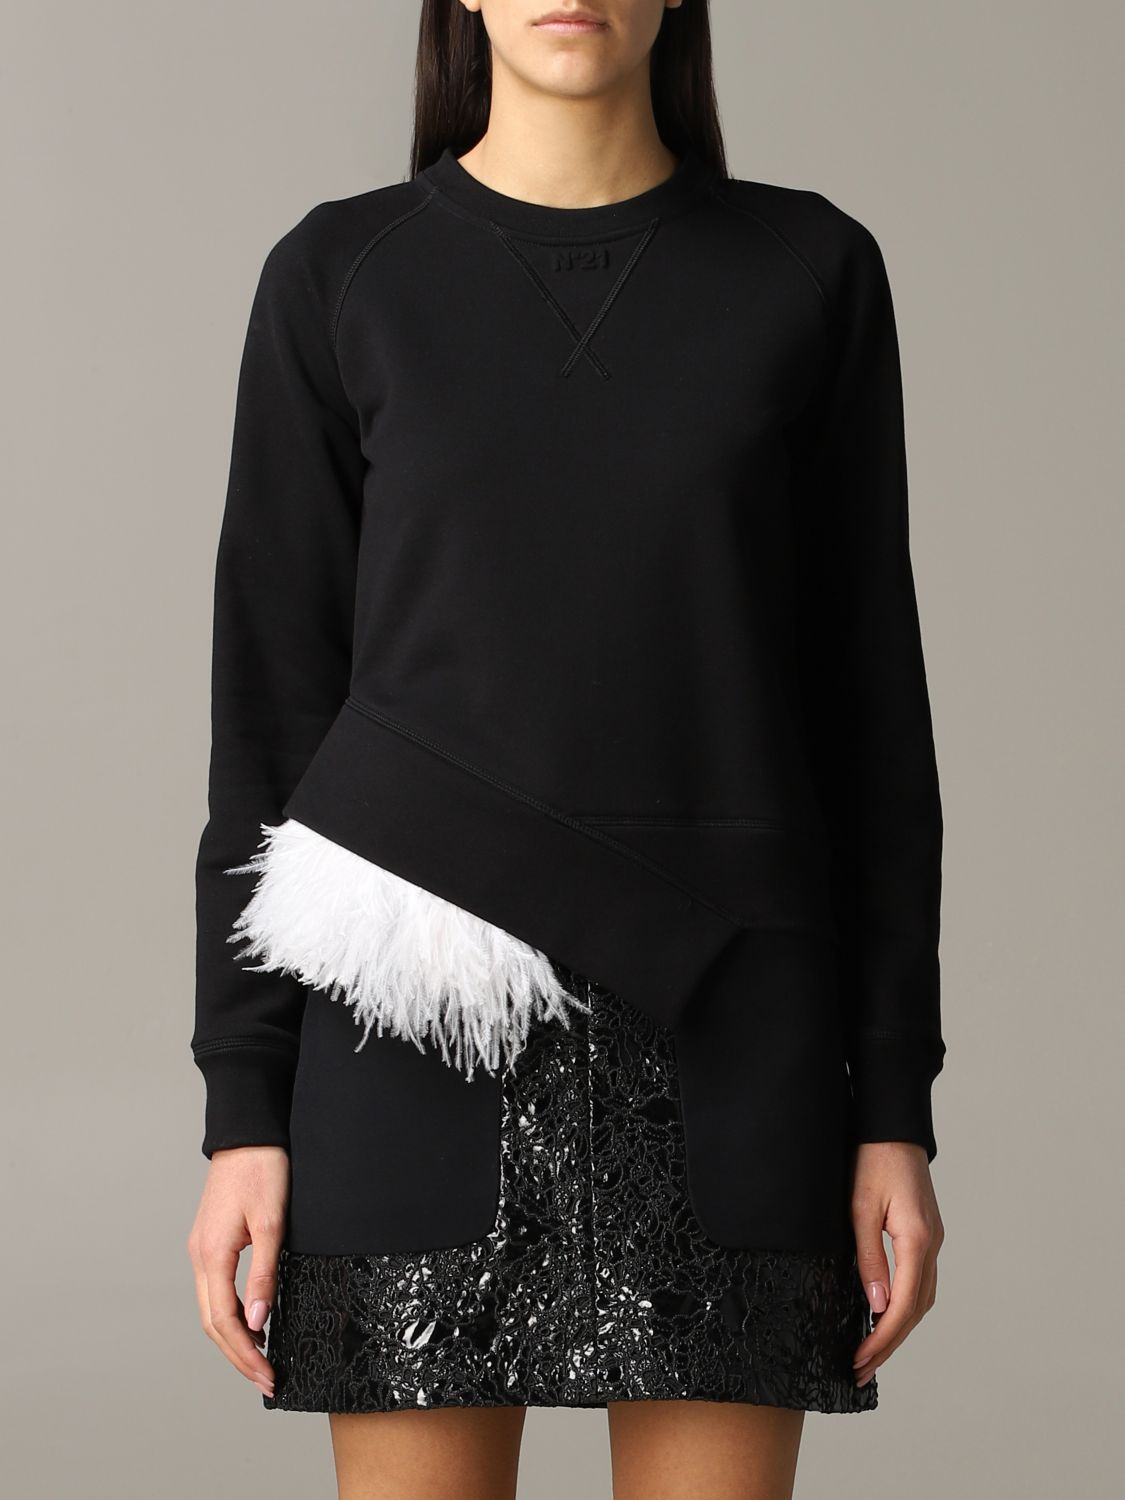 N ° 21 sweatshirt with feather inserts black 1